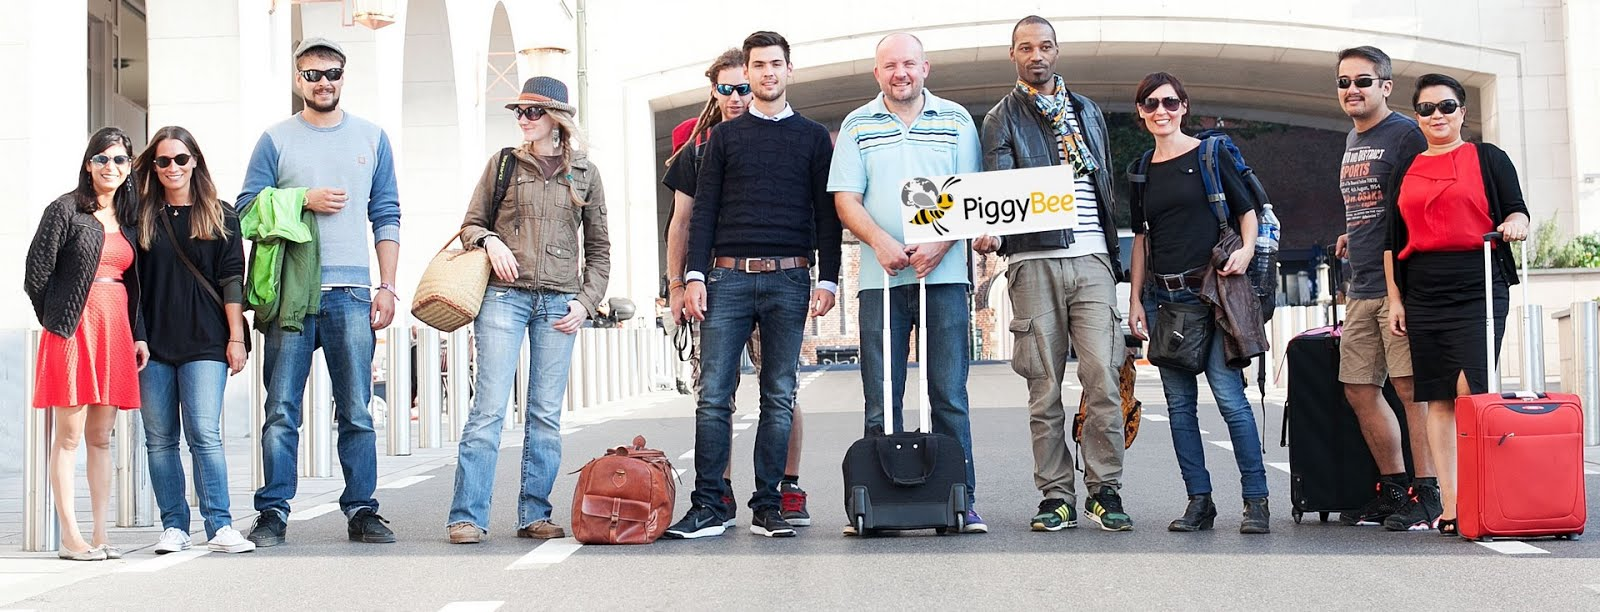 PiggyBee - The Crowdshipping Community